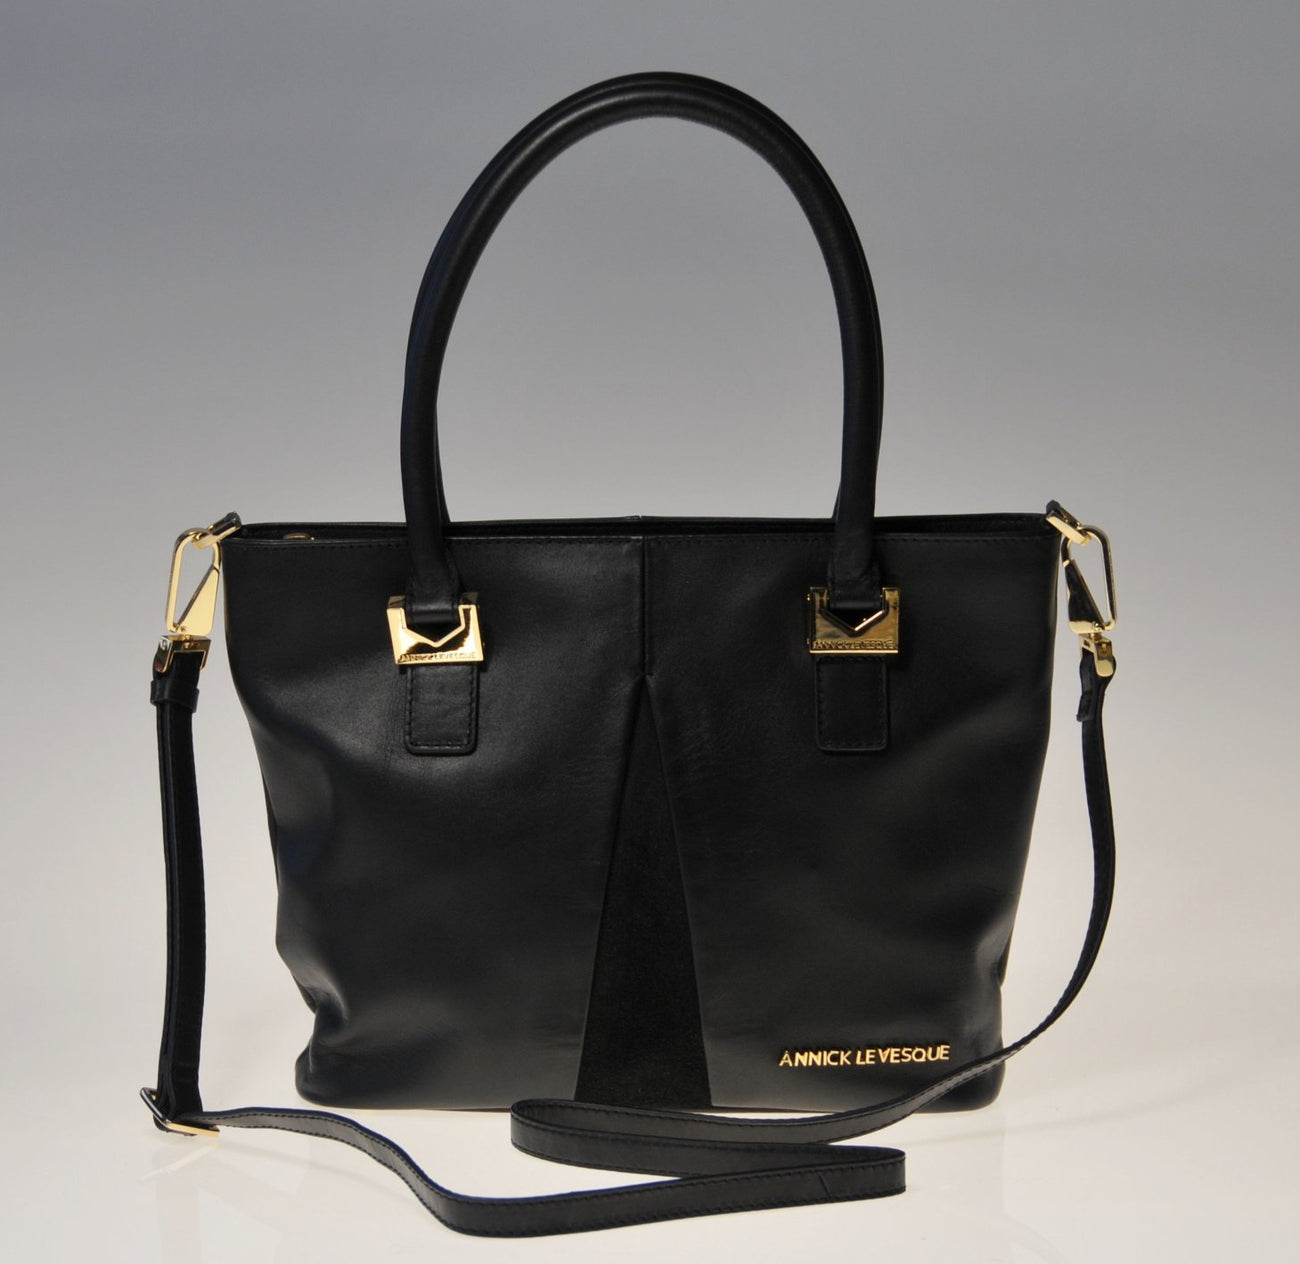 annicklevesque_sac_tina_medium_black